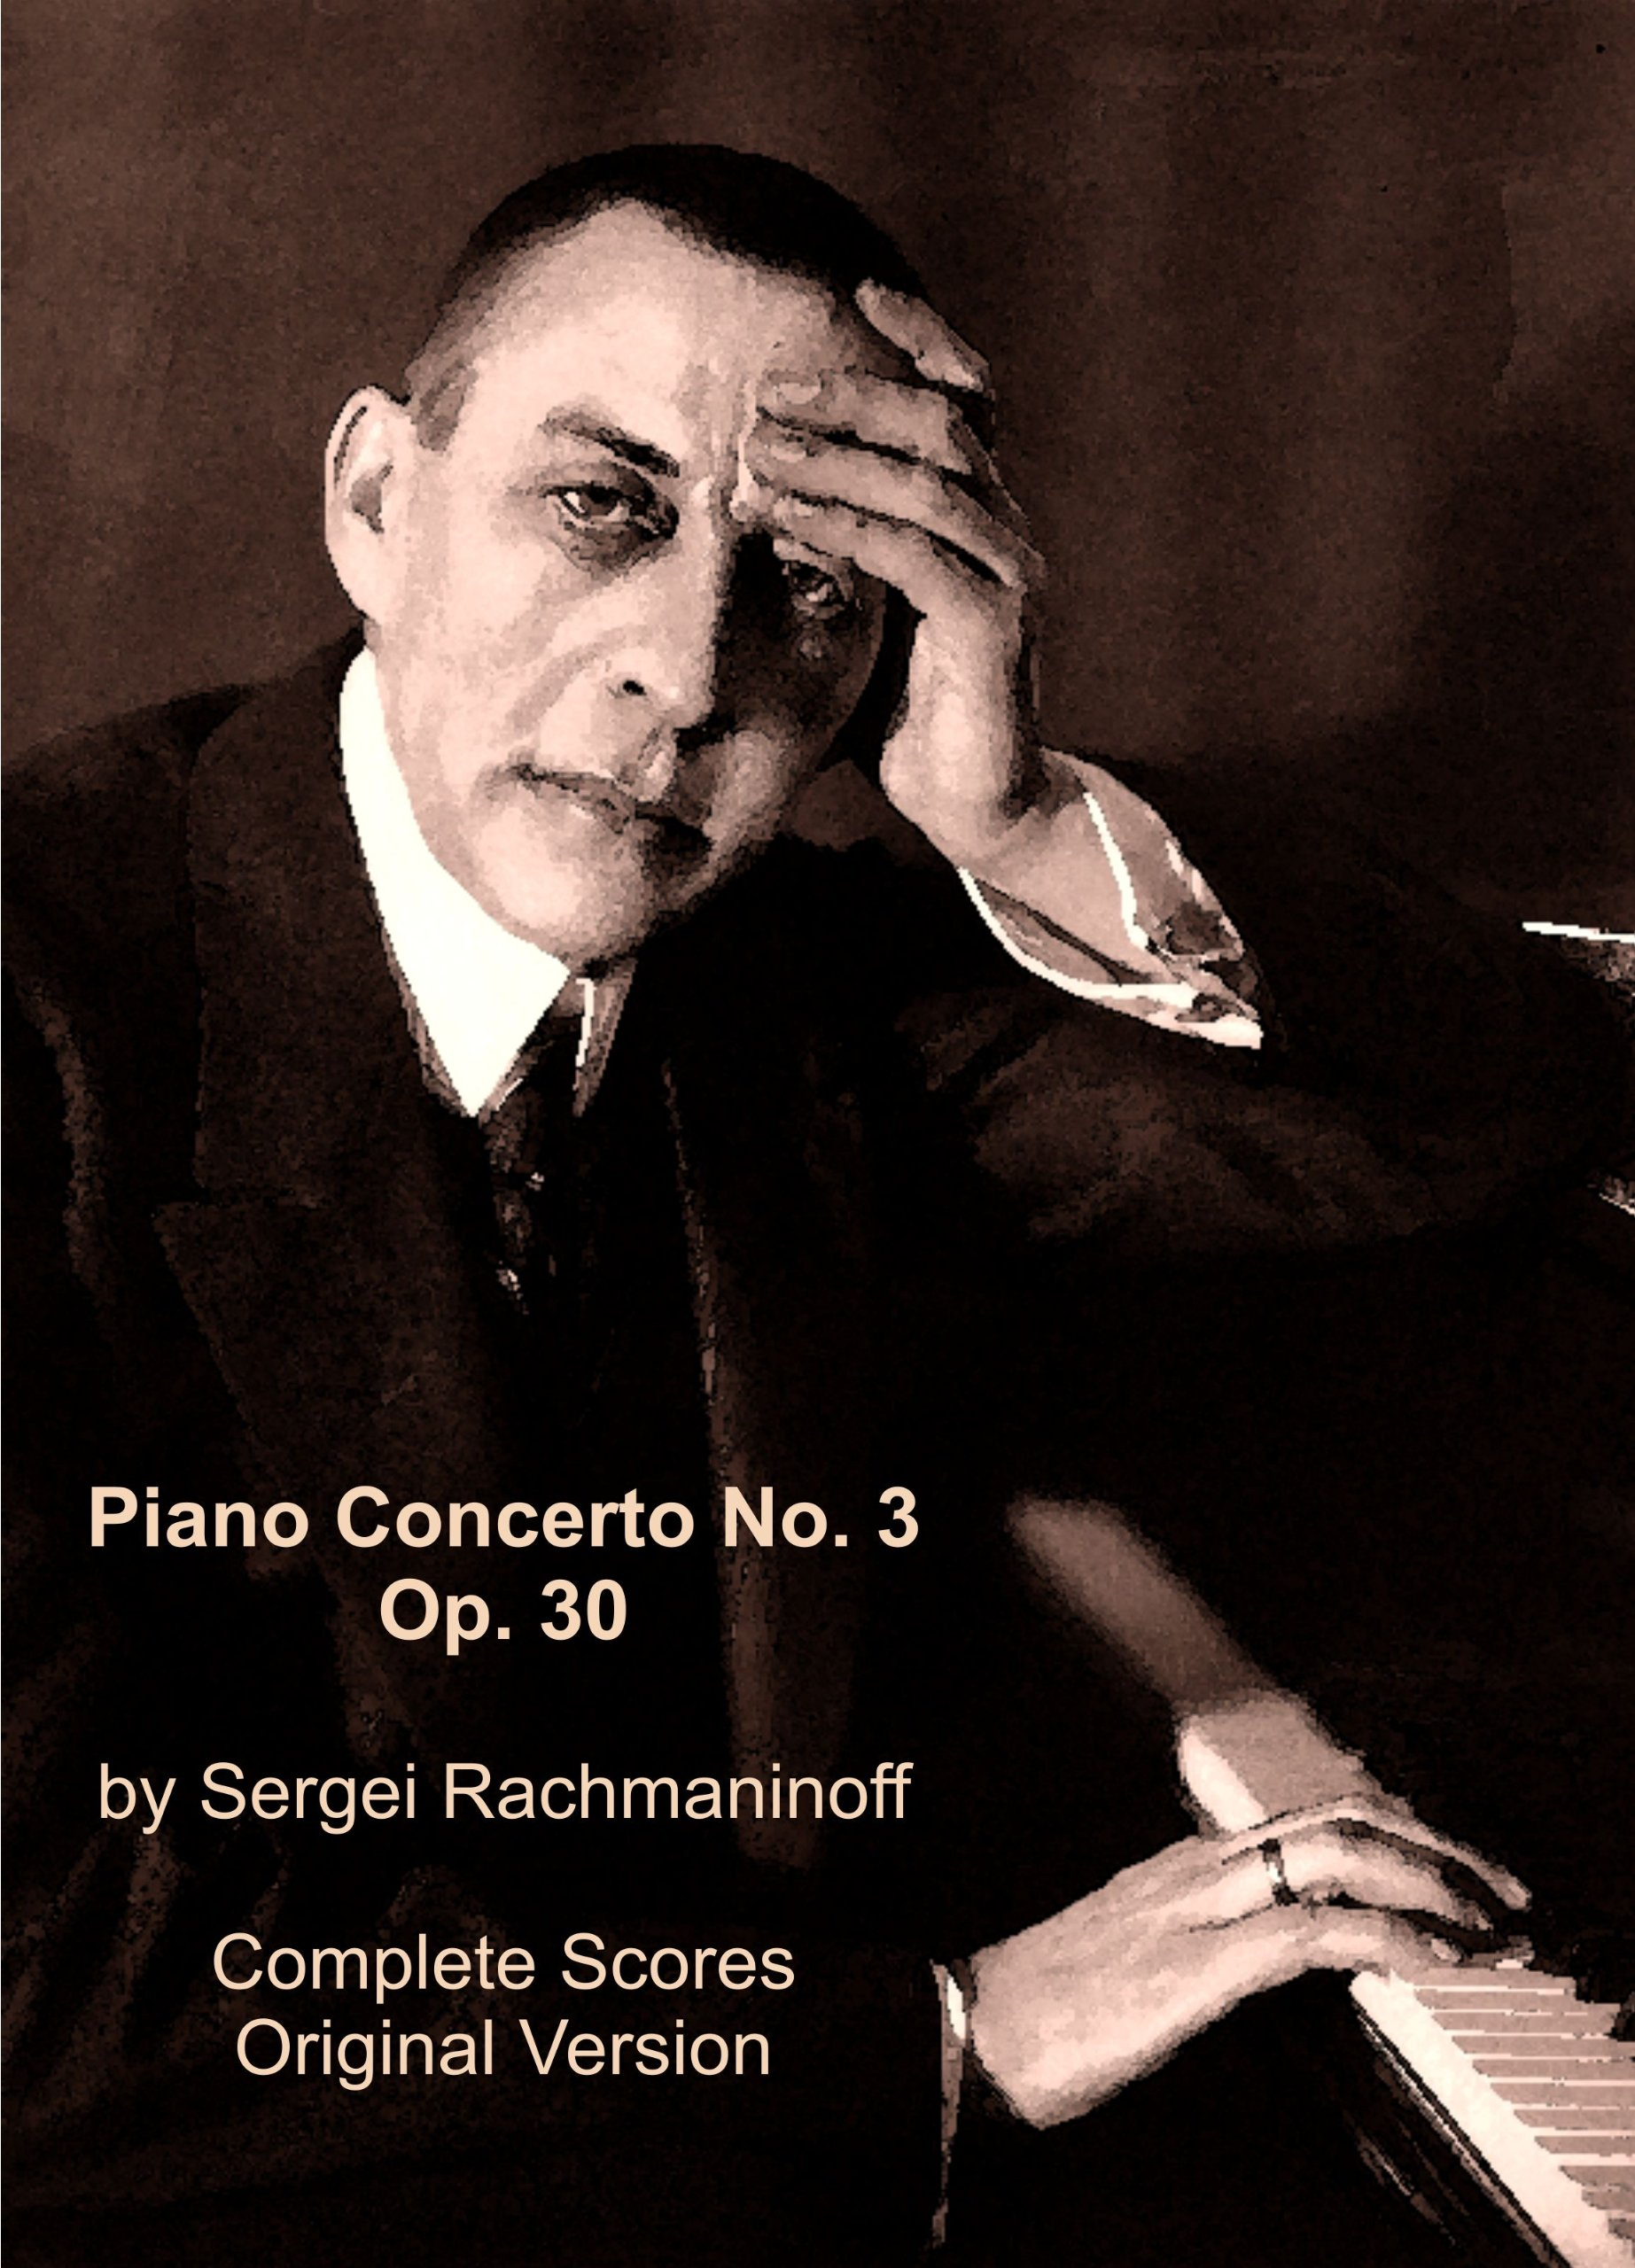 Read Online PIANO CONCERTO No. 3 Op. 30 by Sergei Rachmaninoff. Full Score All Instruments. (Facsimile 2012) pdf